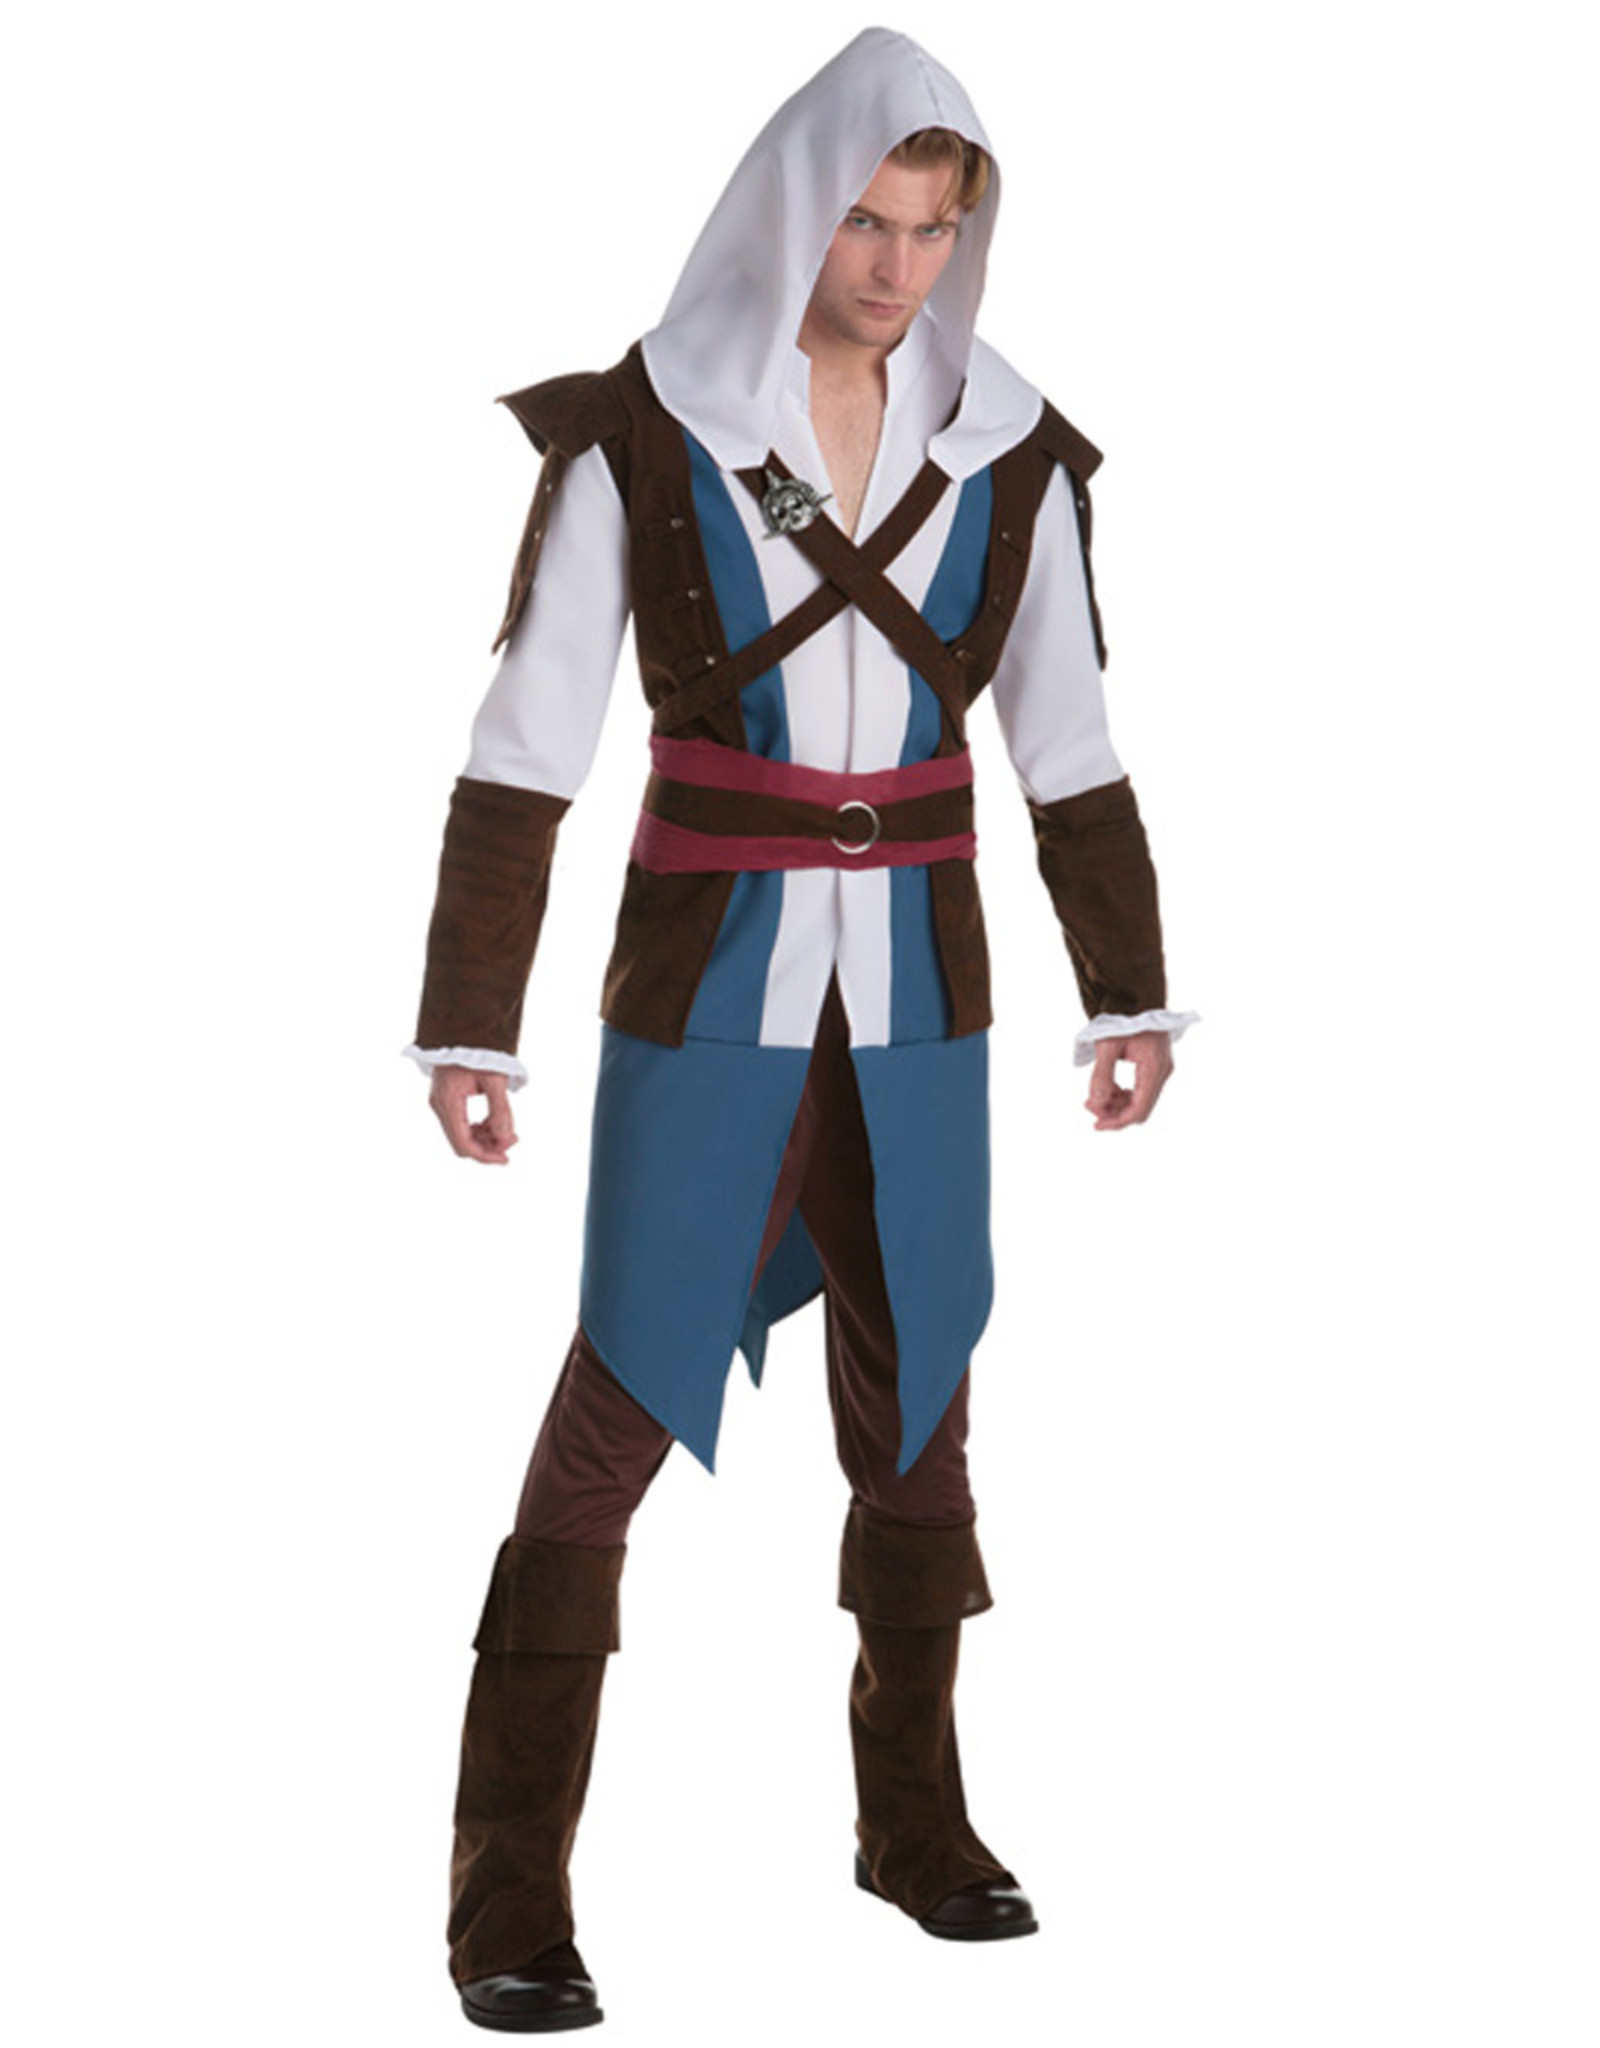 Edward Assassin S Creed Costume Men S Party On